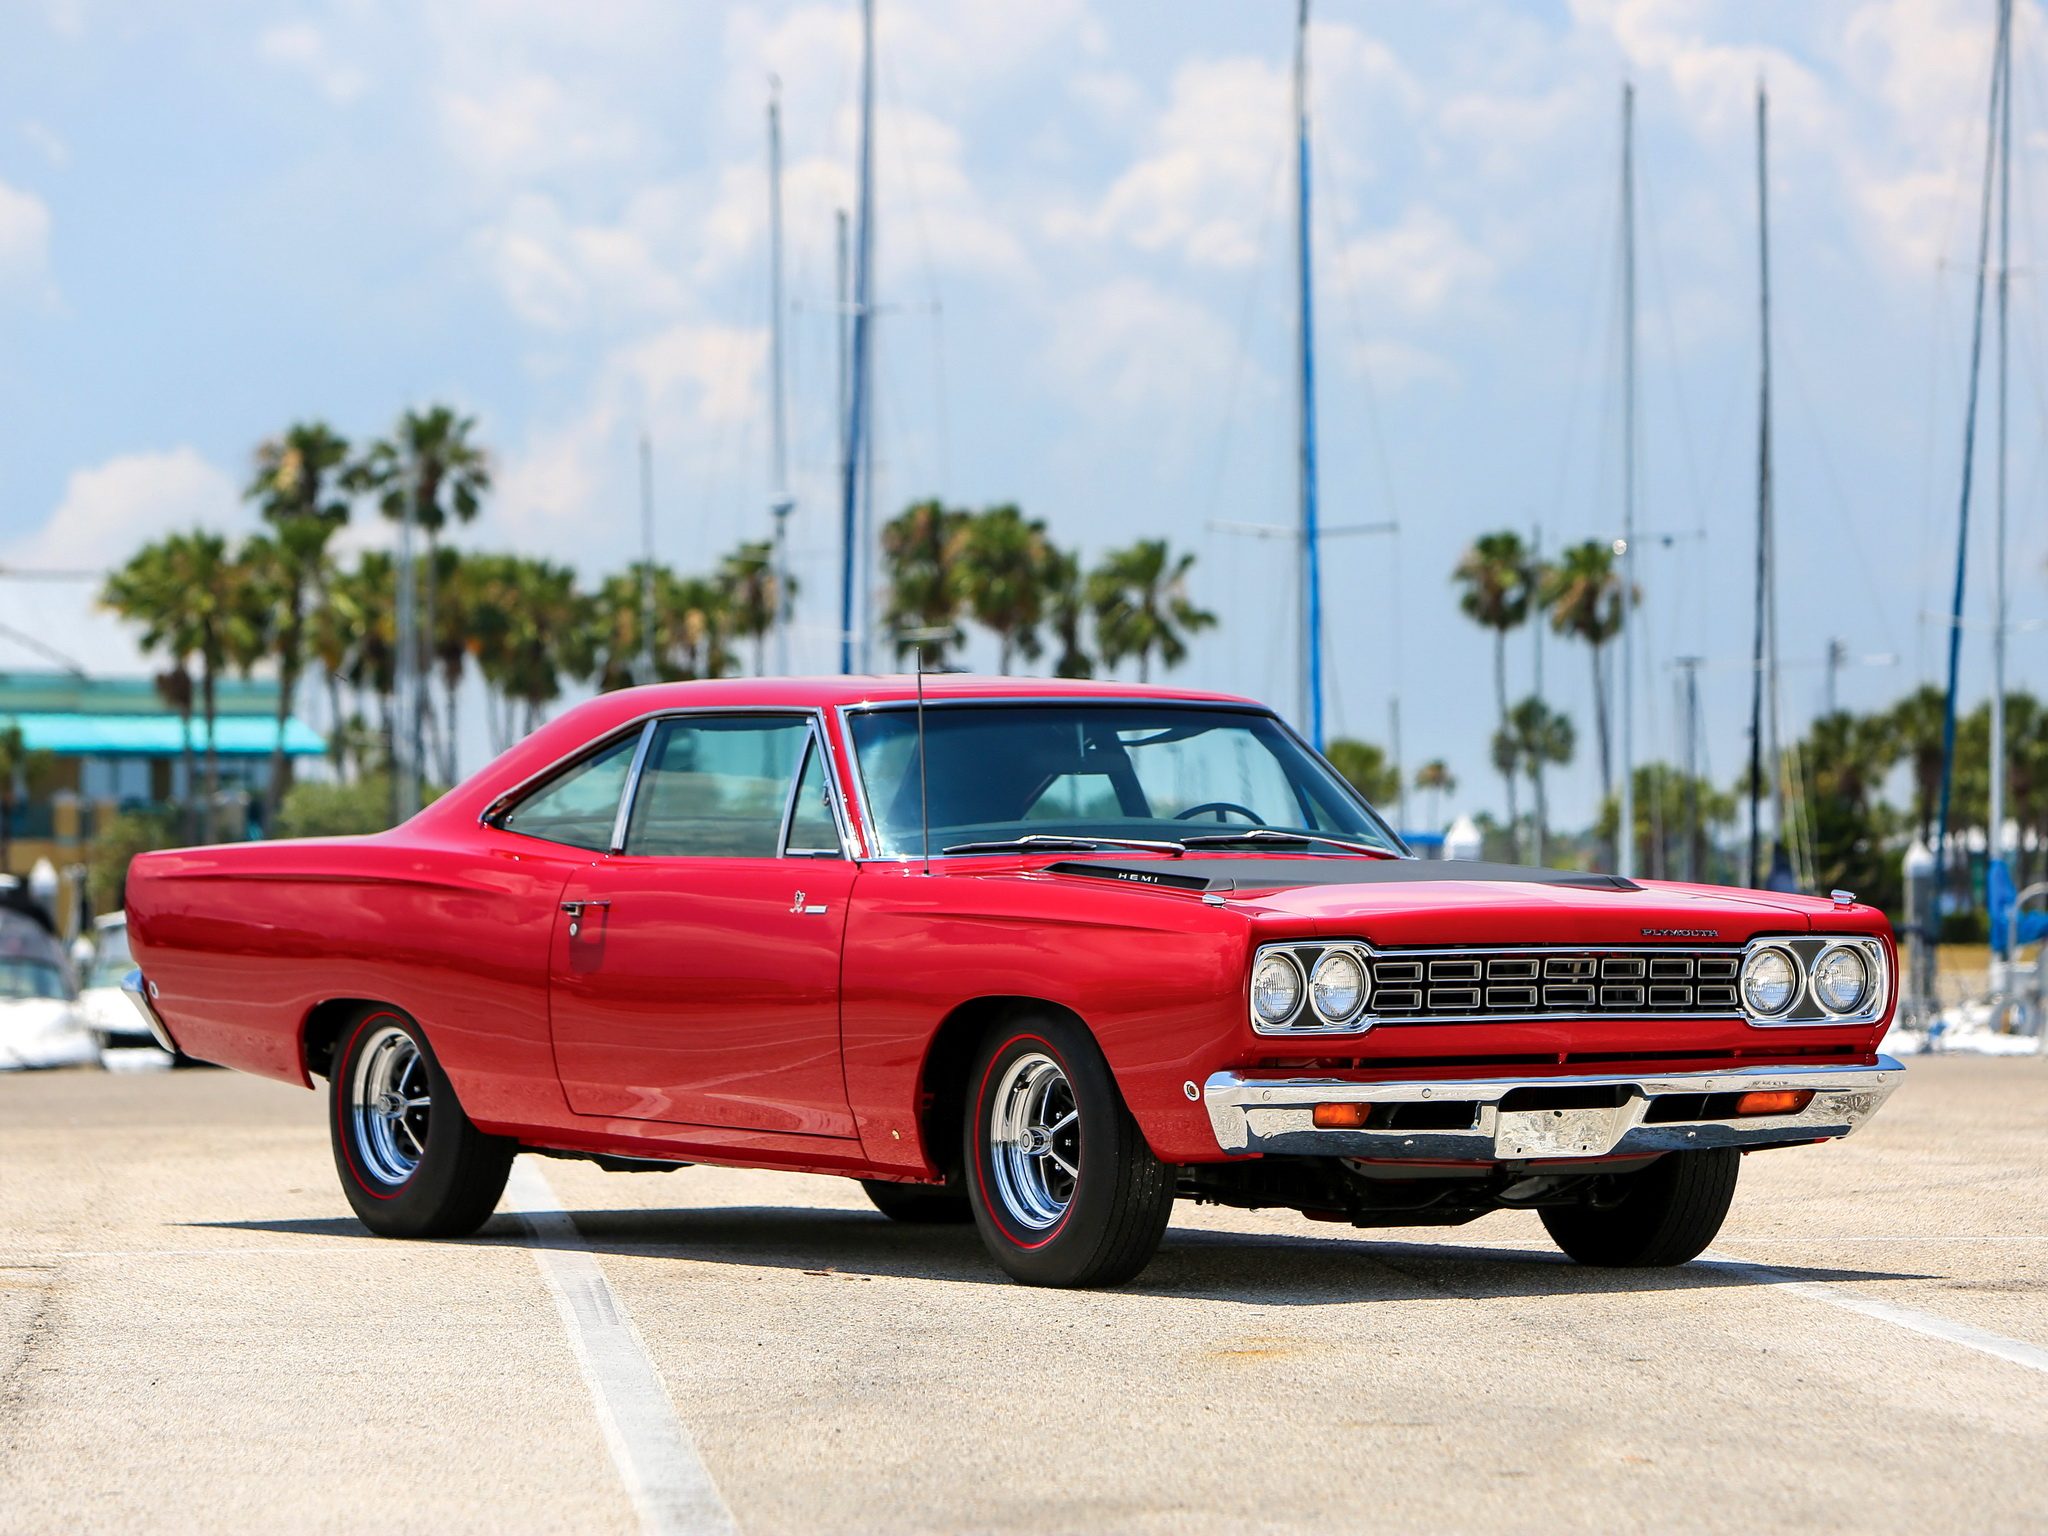 If you list hot cars, you have to mention the Hemi Road Runner